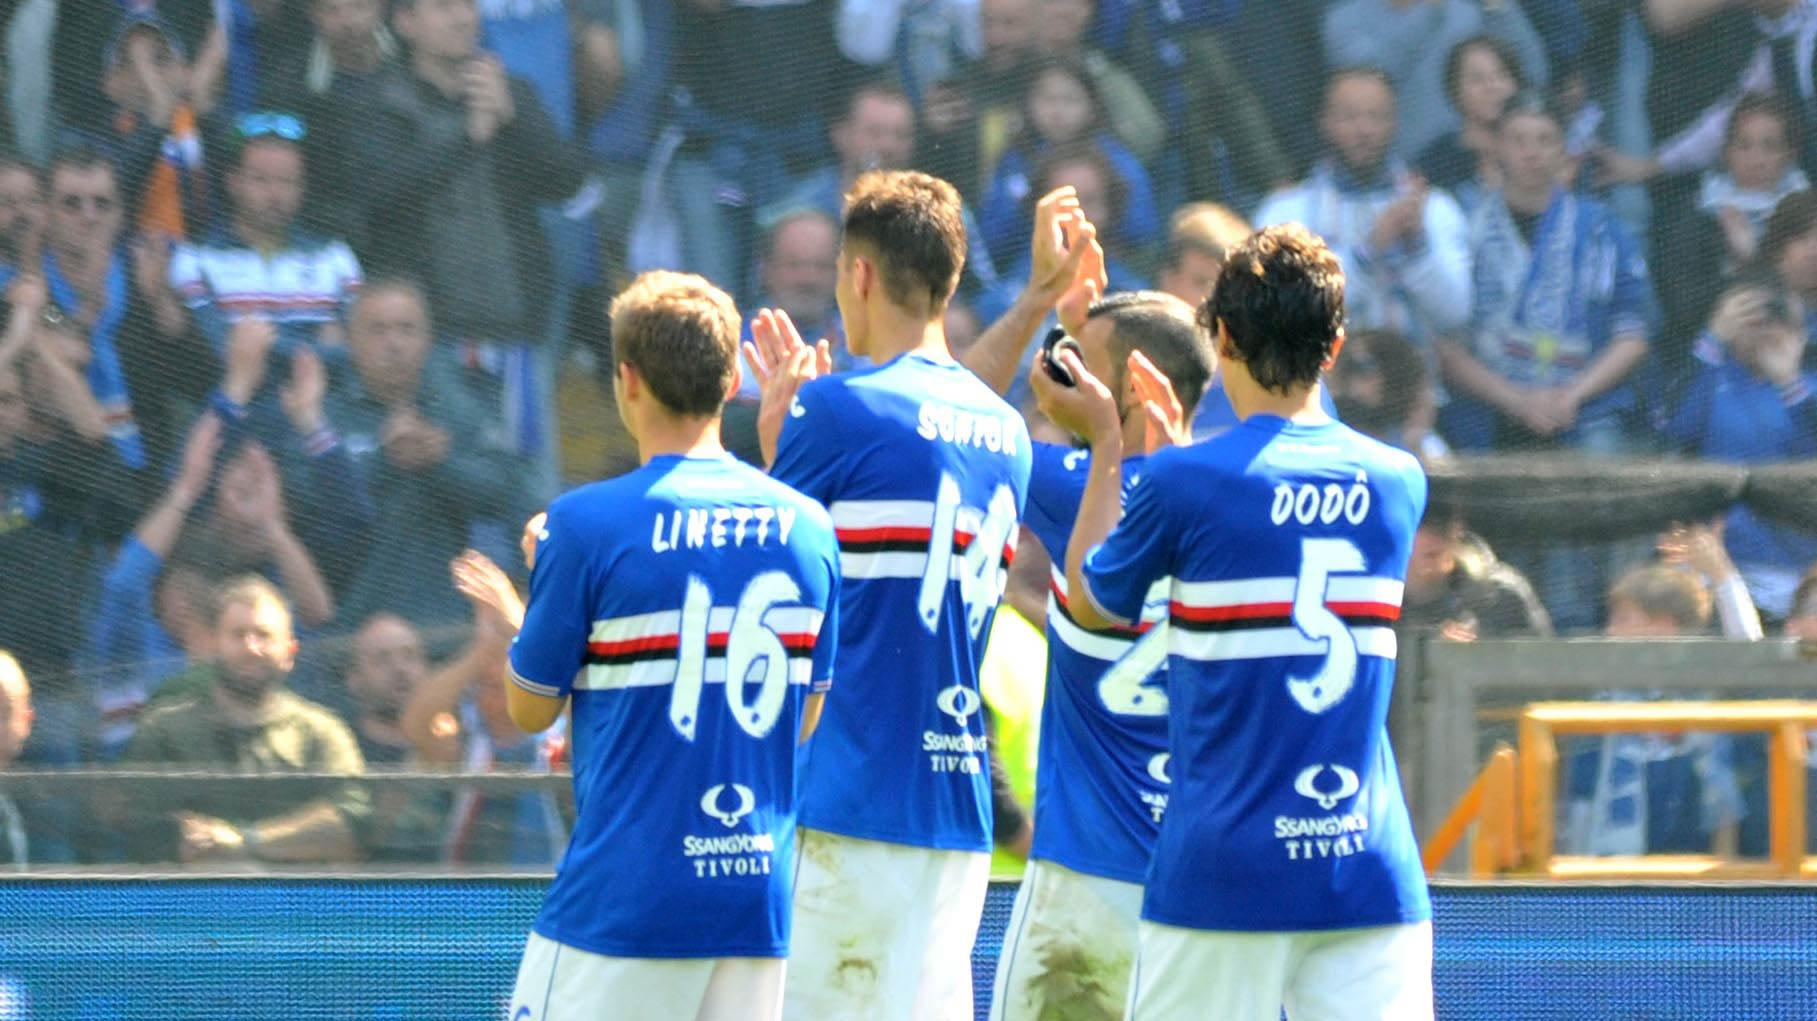 sampdoria retrocesse